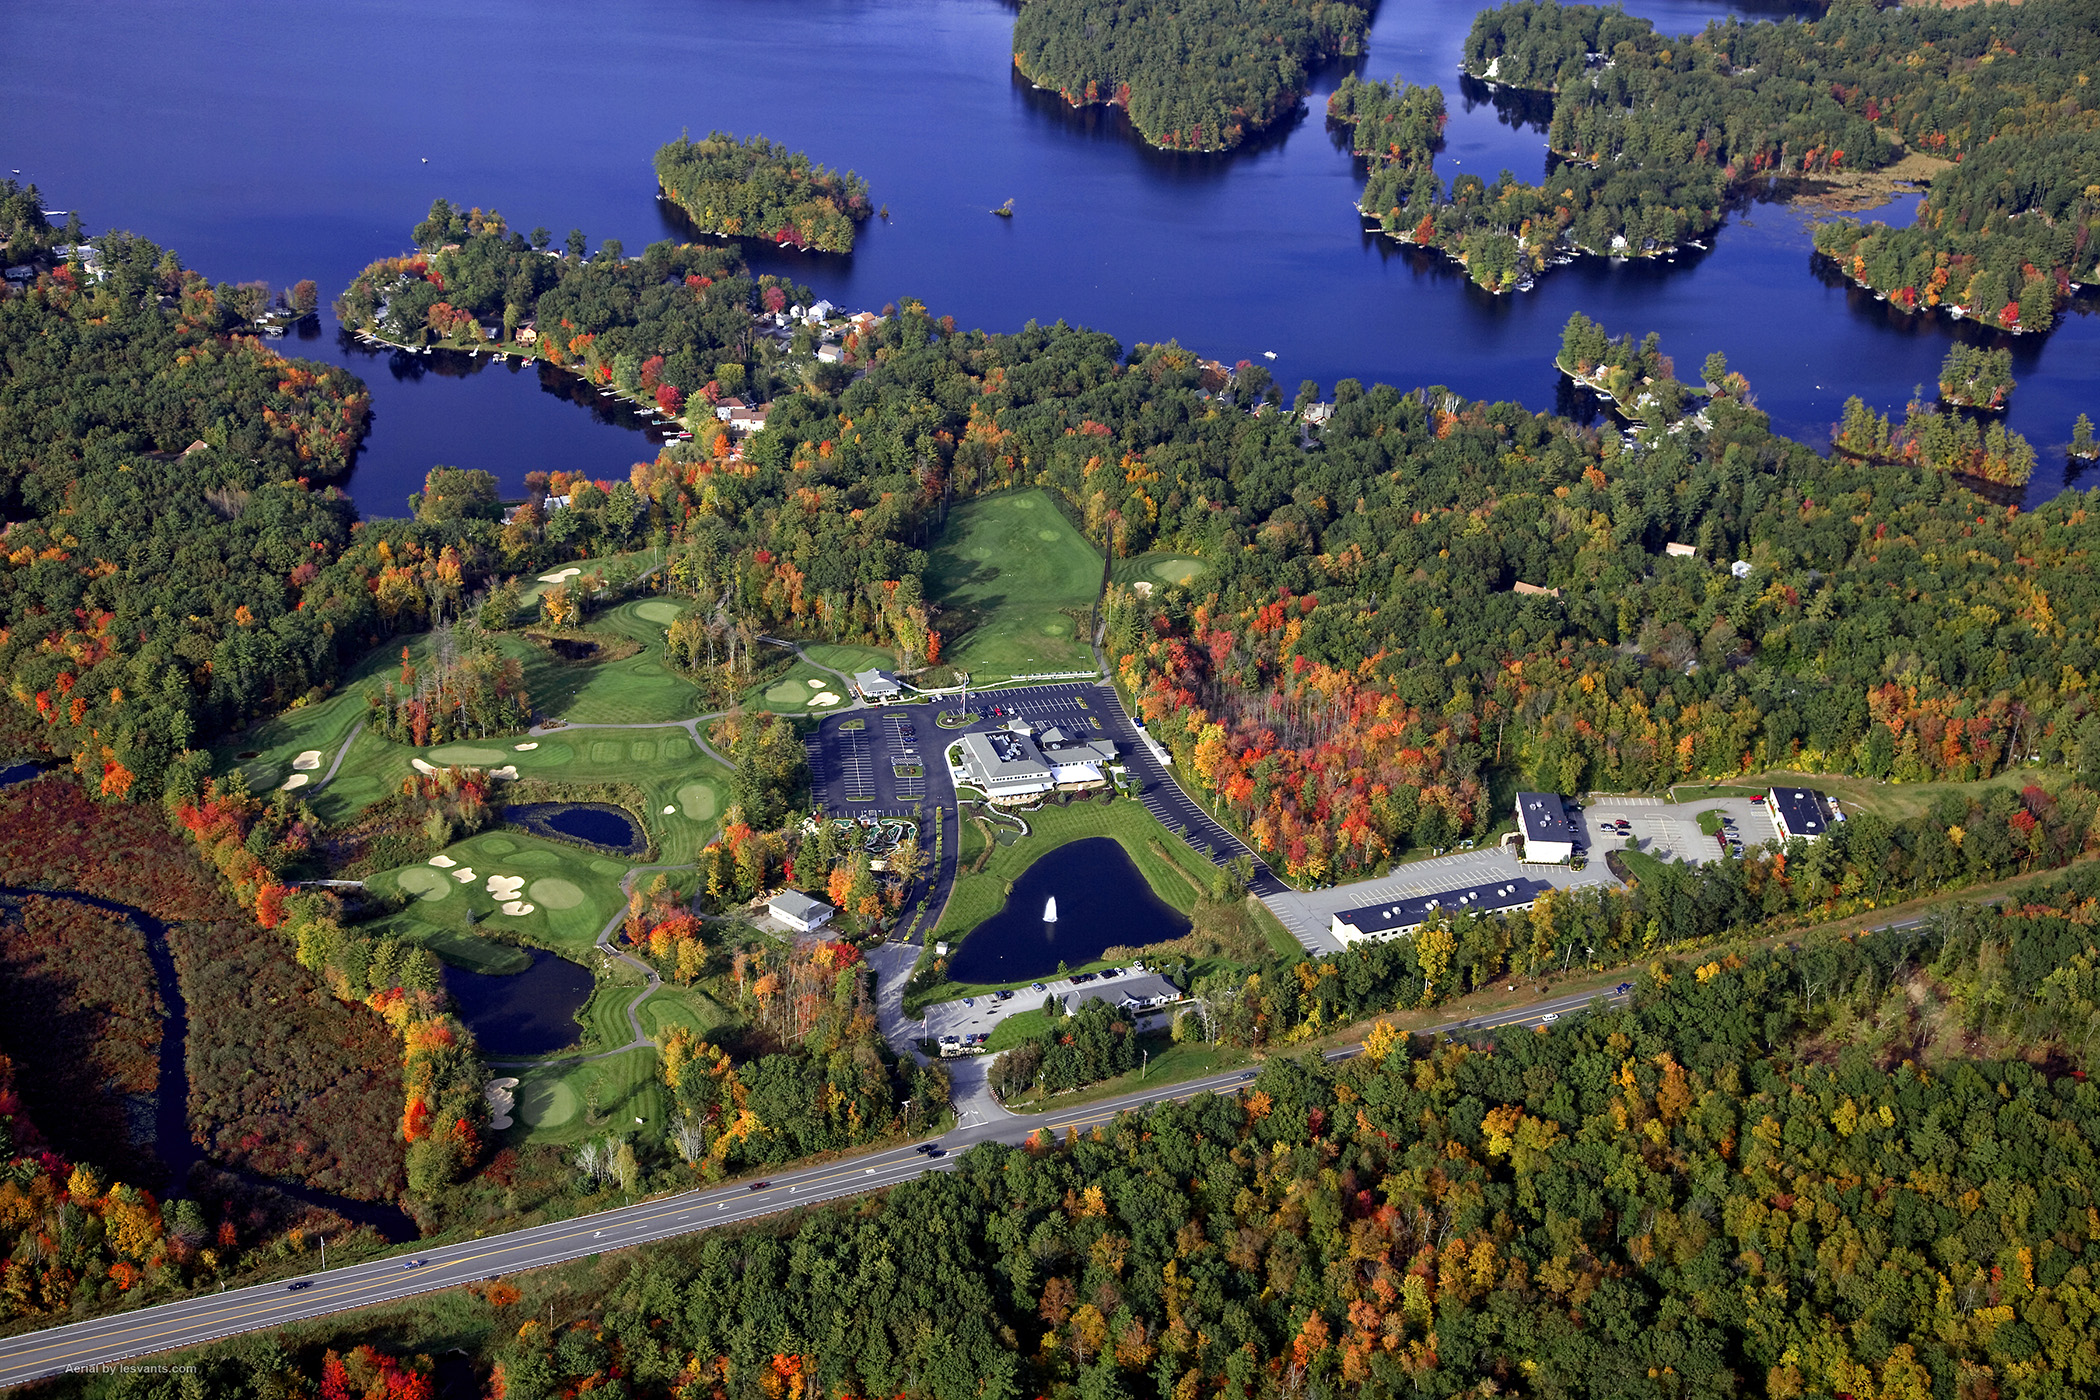 Brookstone Aerial across 111 for emailing